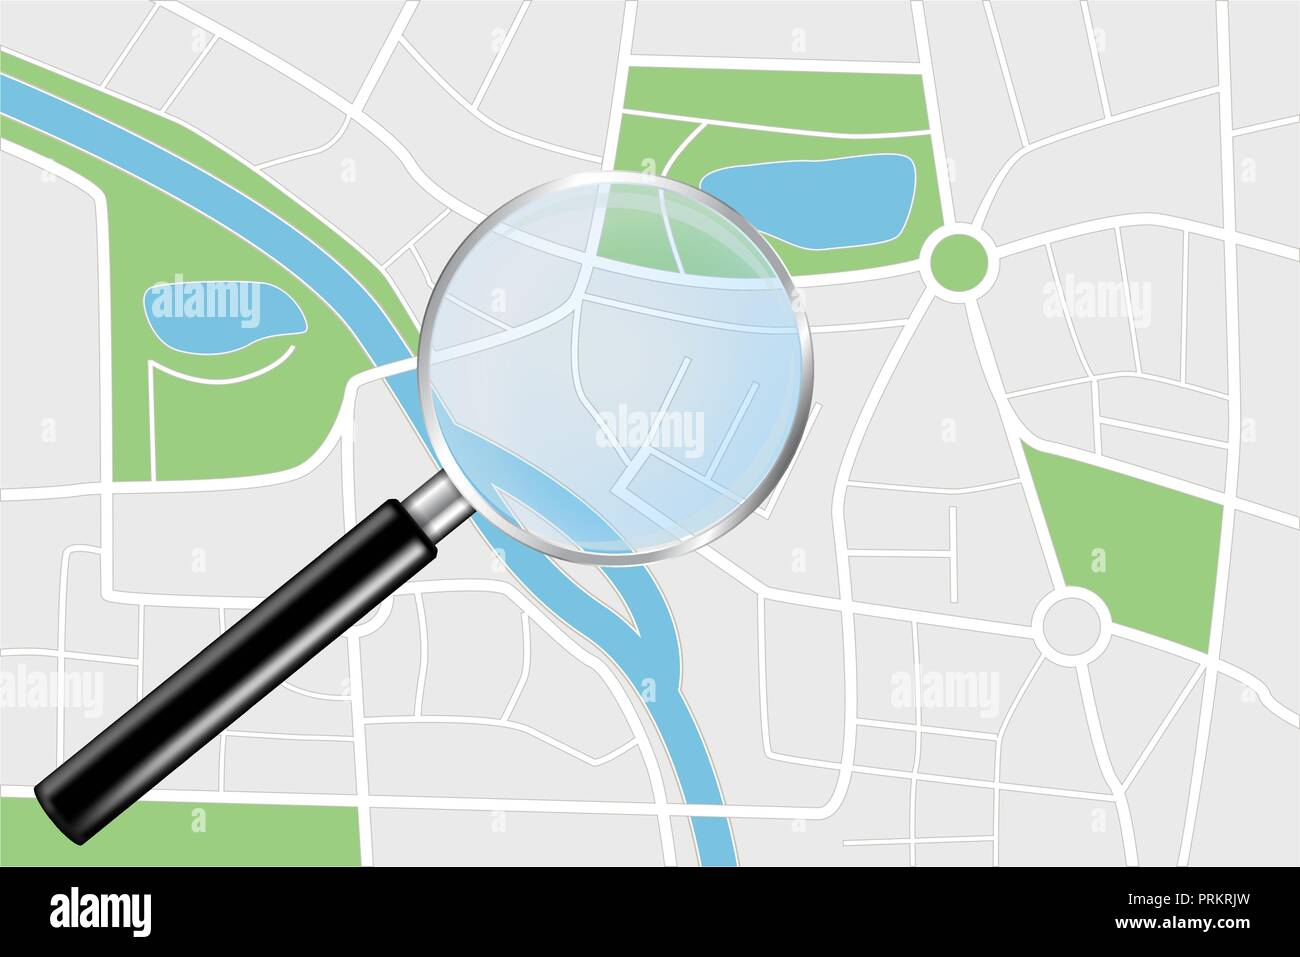 City map and Transparent Magnifying glass - Stock Vector